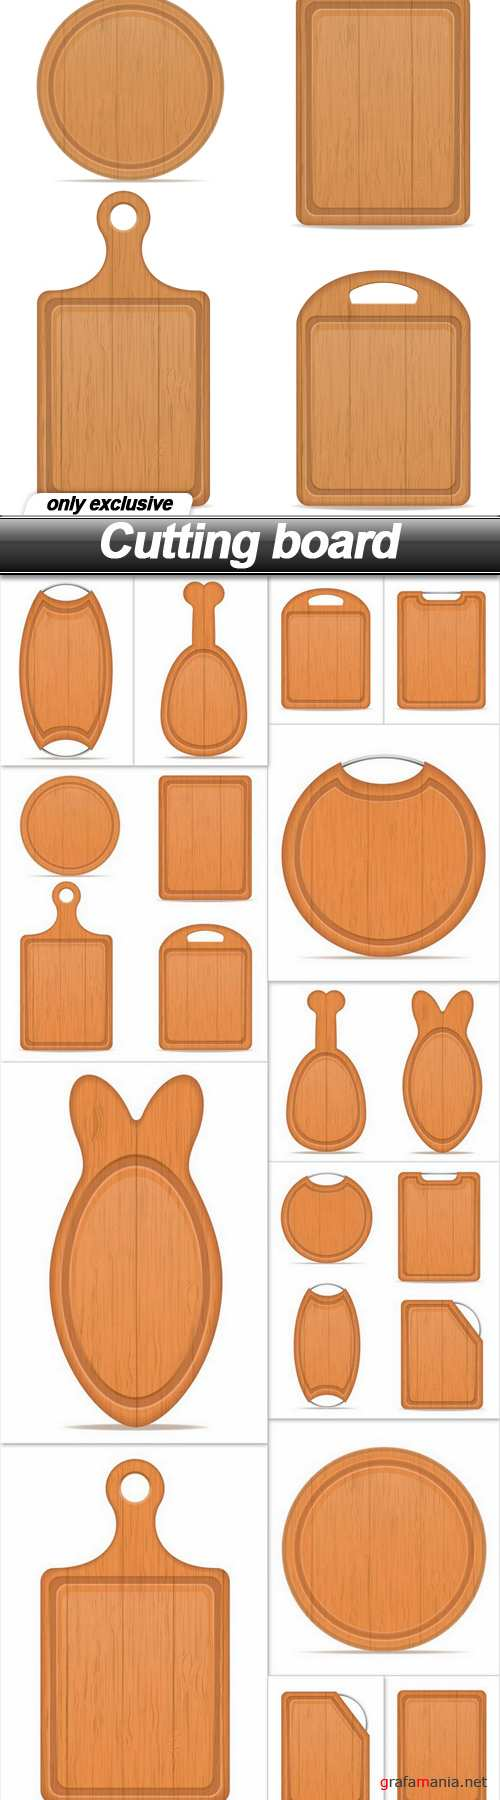 Cutting board - 13 EPS